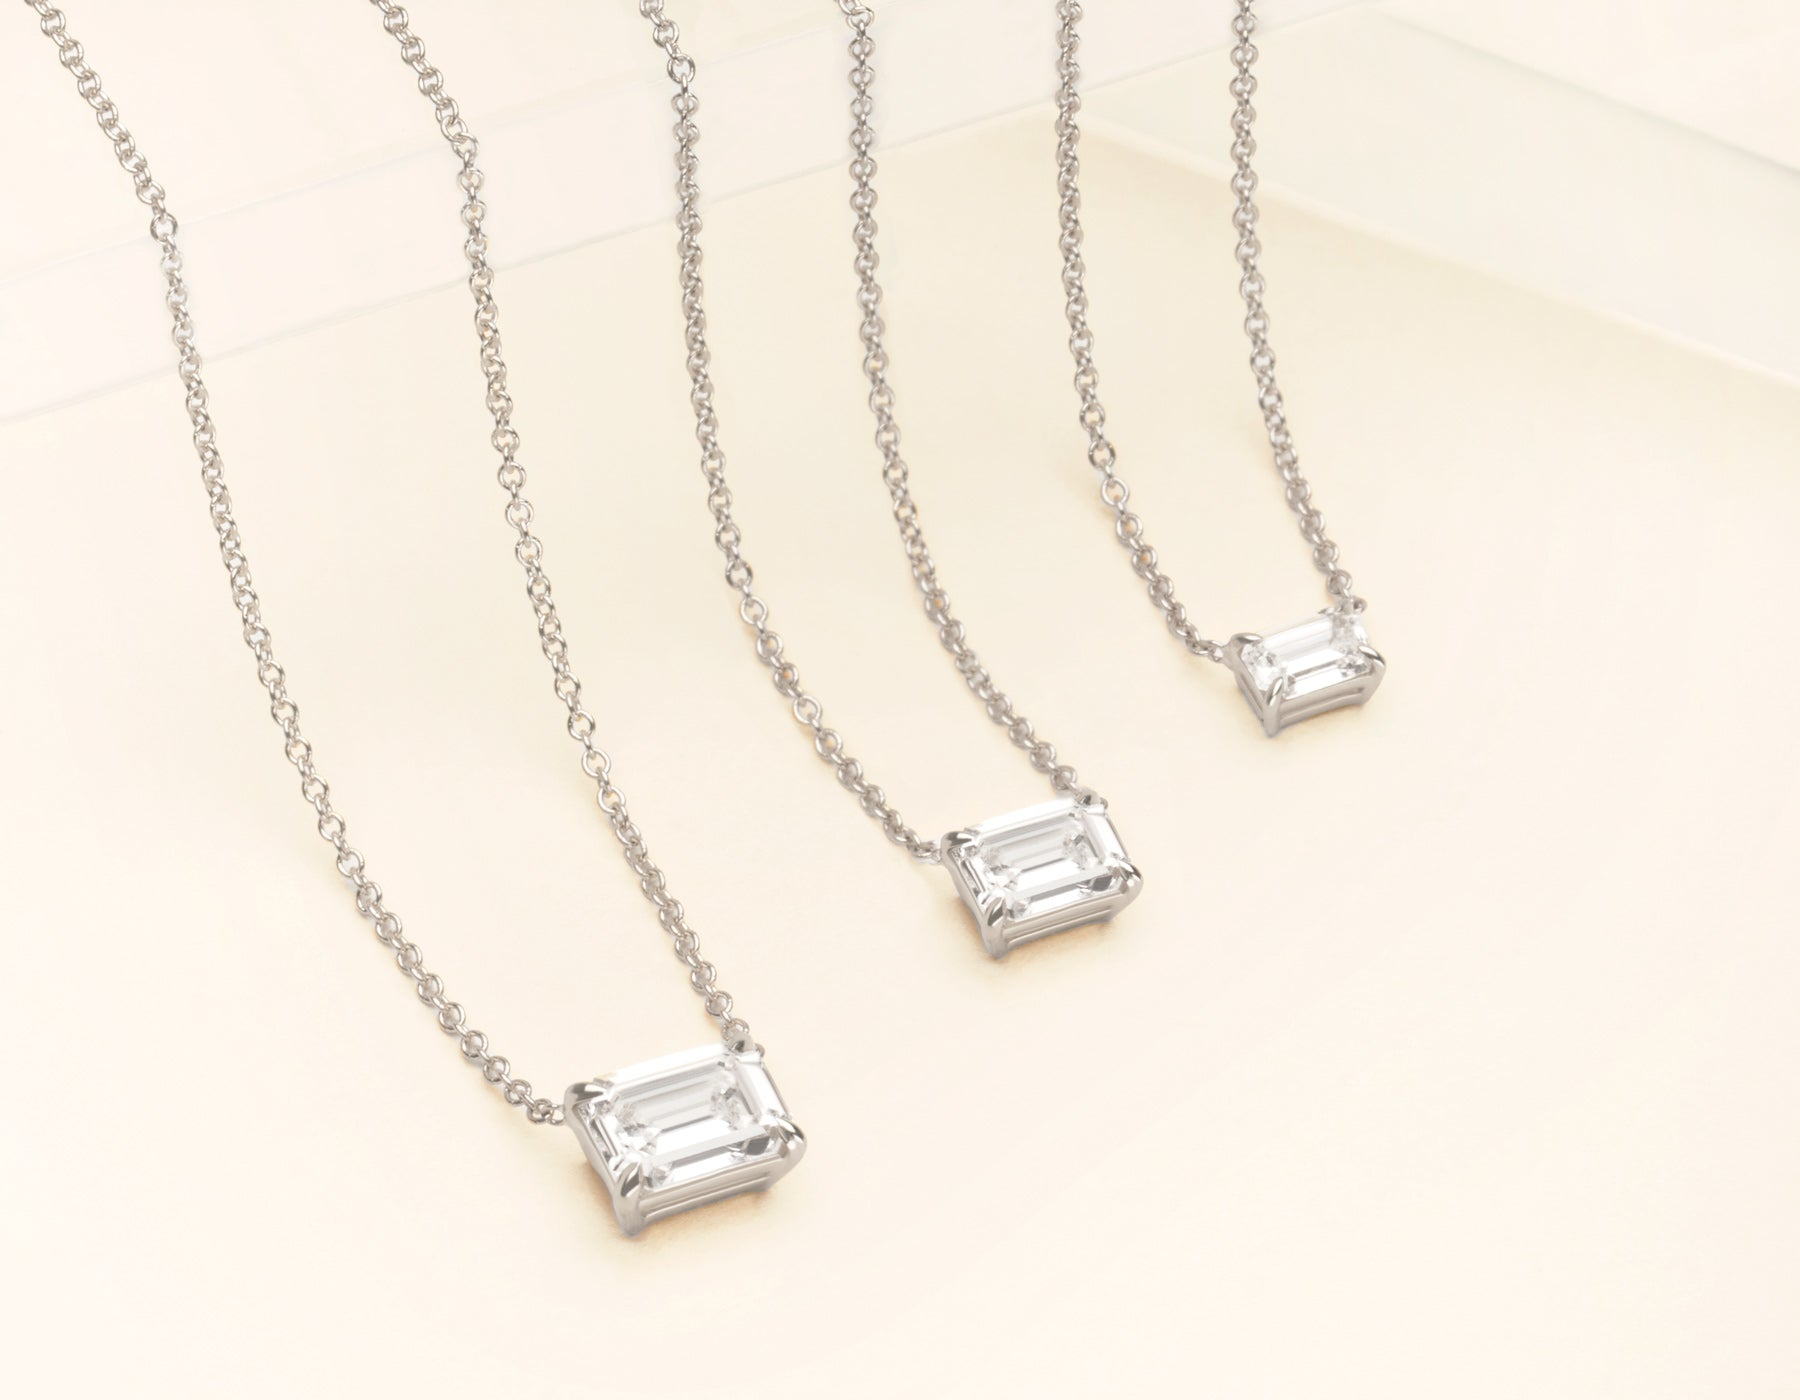 18K Solid White Gold Emerald Diamond Necklace on thing chain with .25 carat Half Carat or 1 Carat Diamond, 18K White Gold